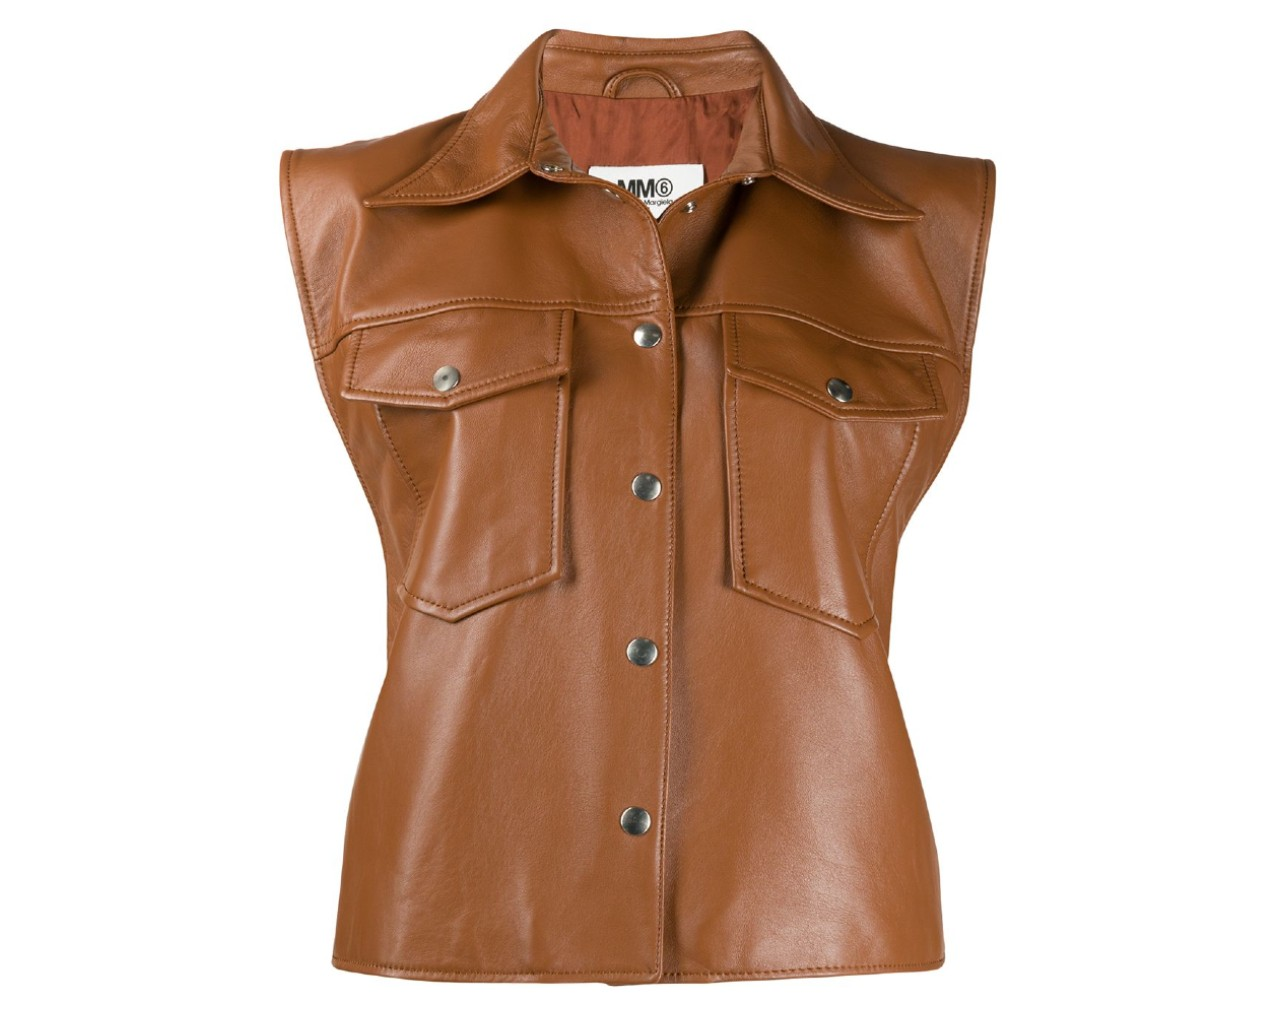 MM6 Maison Margiela sleeveless leather jacket, inspired by Bella Hadid's brown leather vest